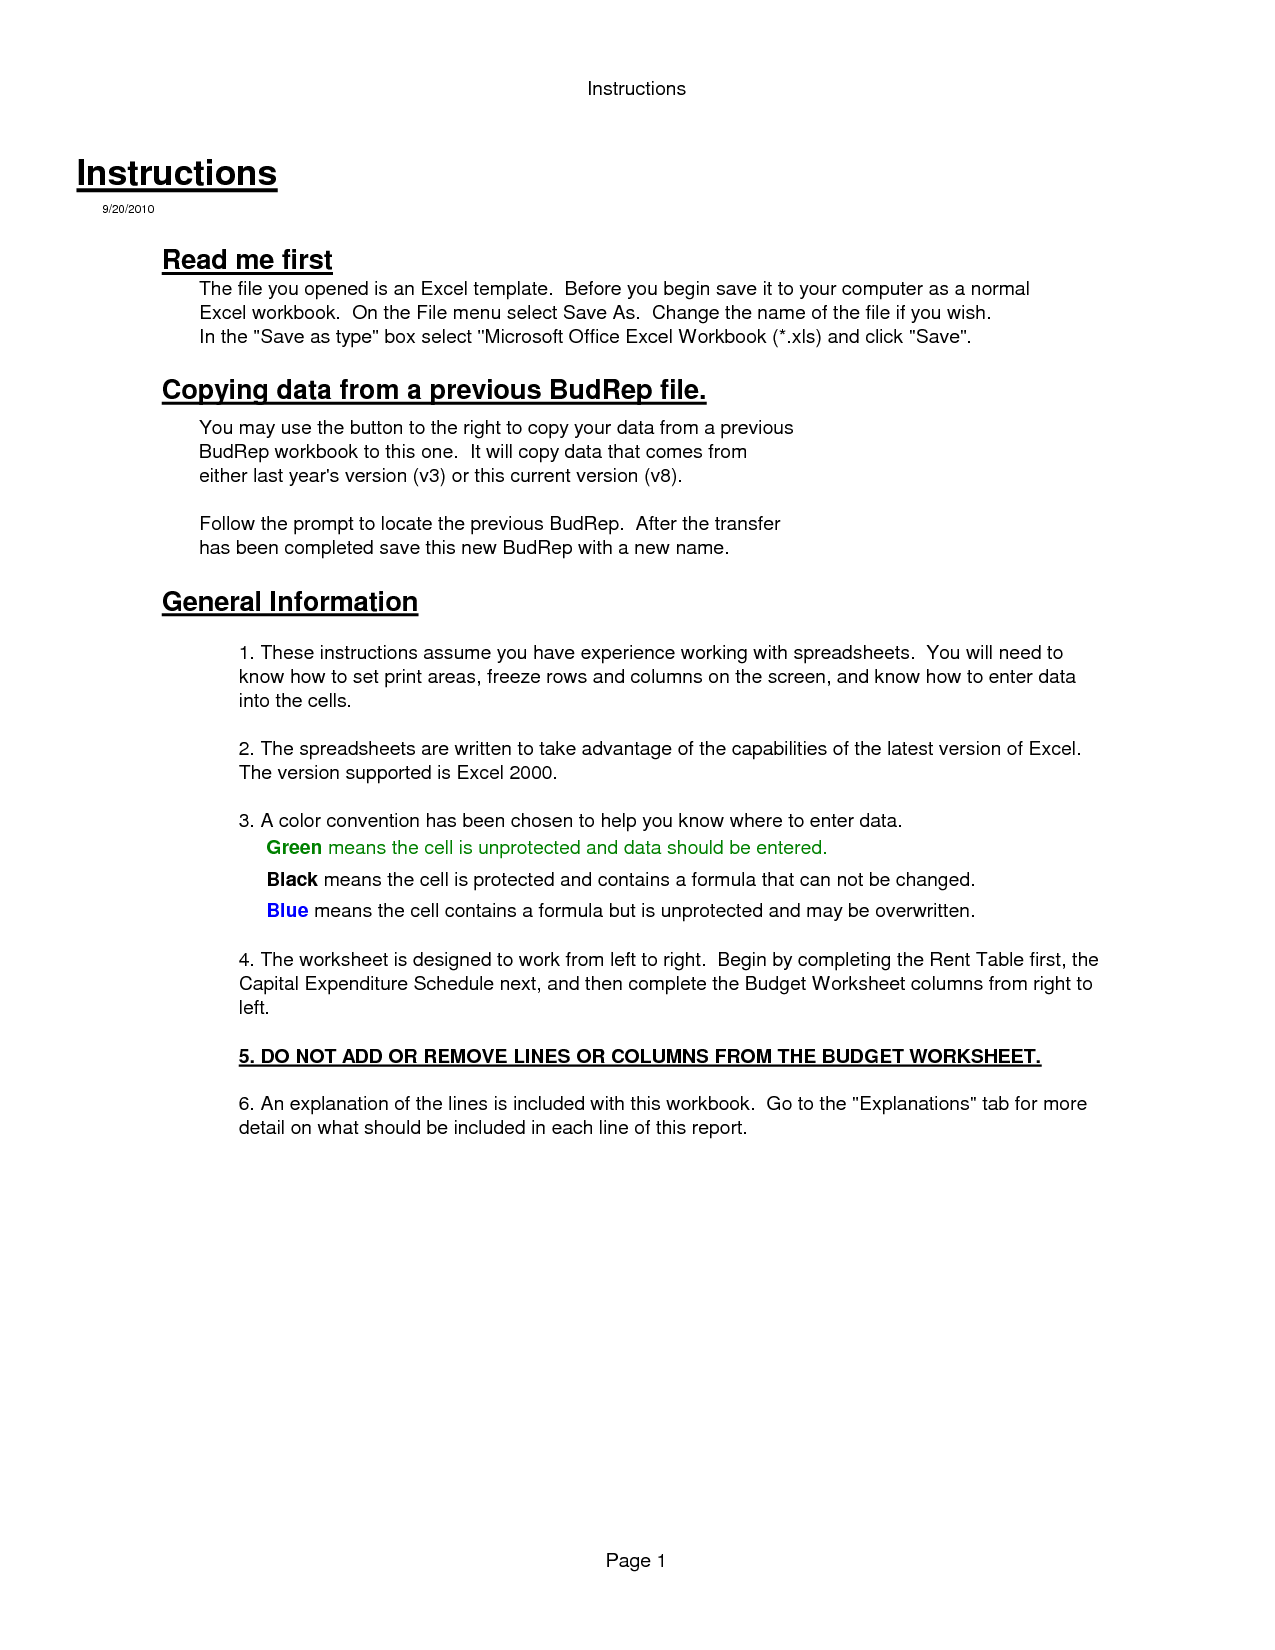 30 days eviction notice template